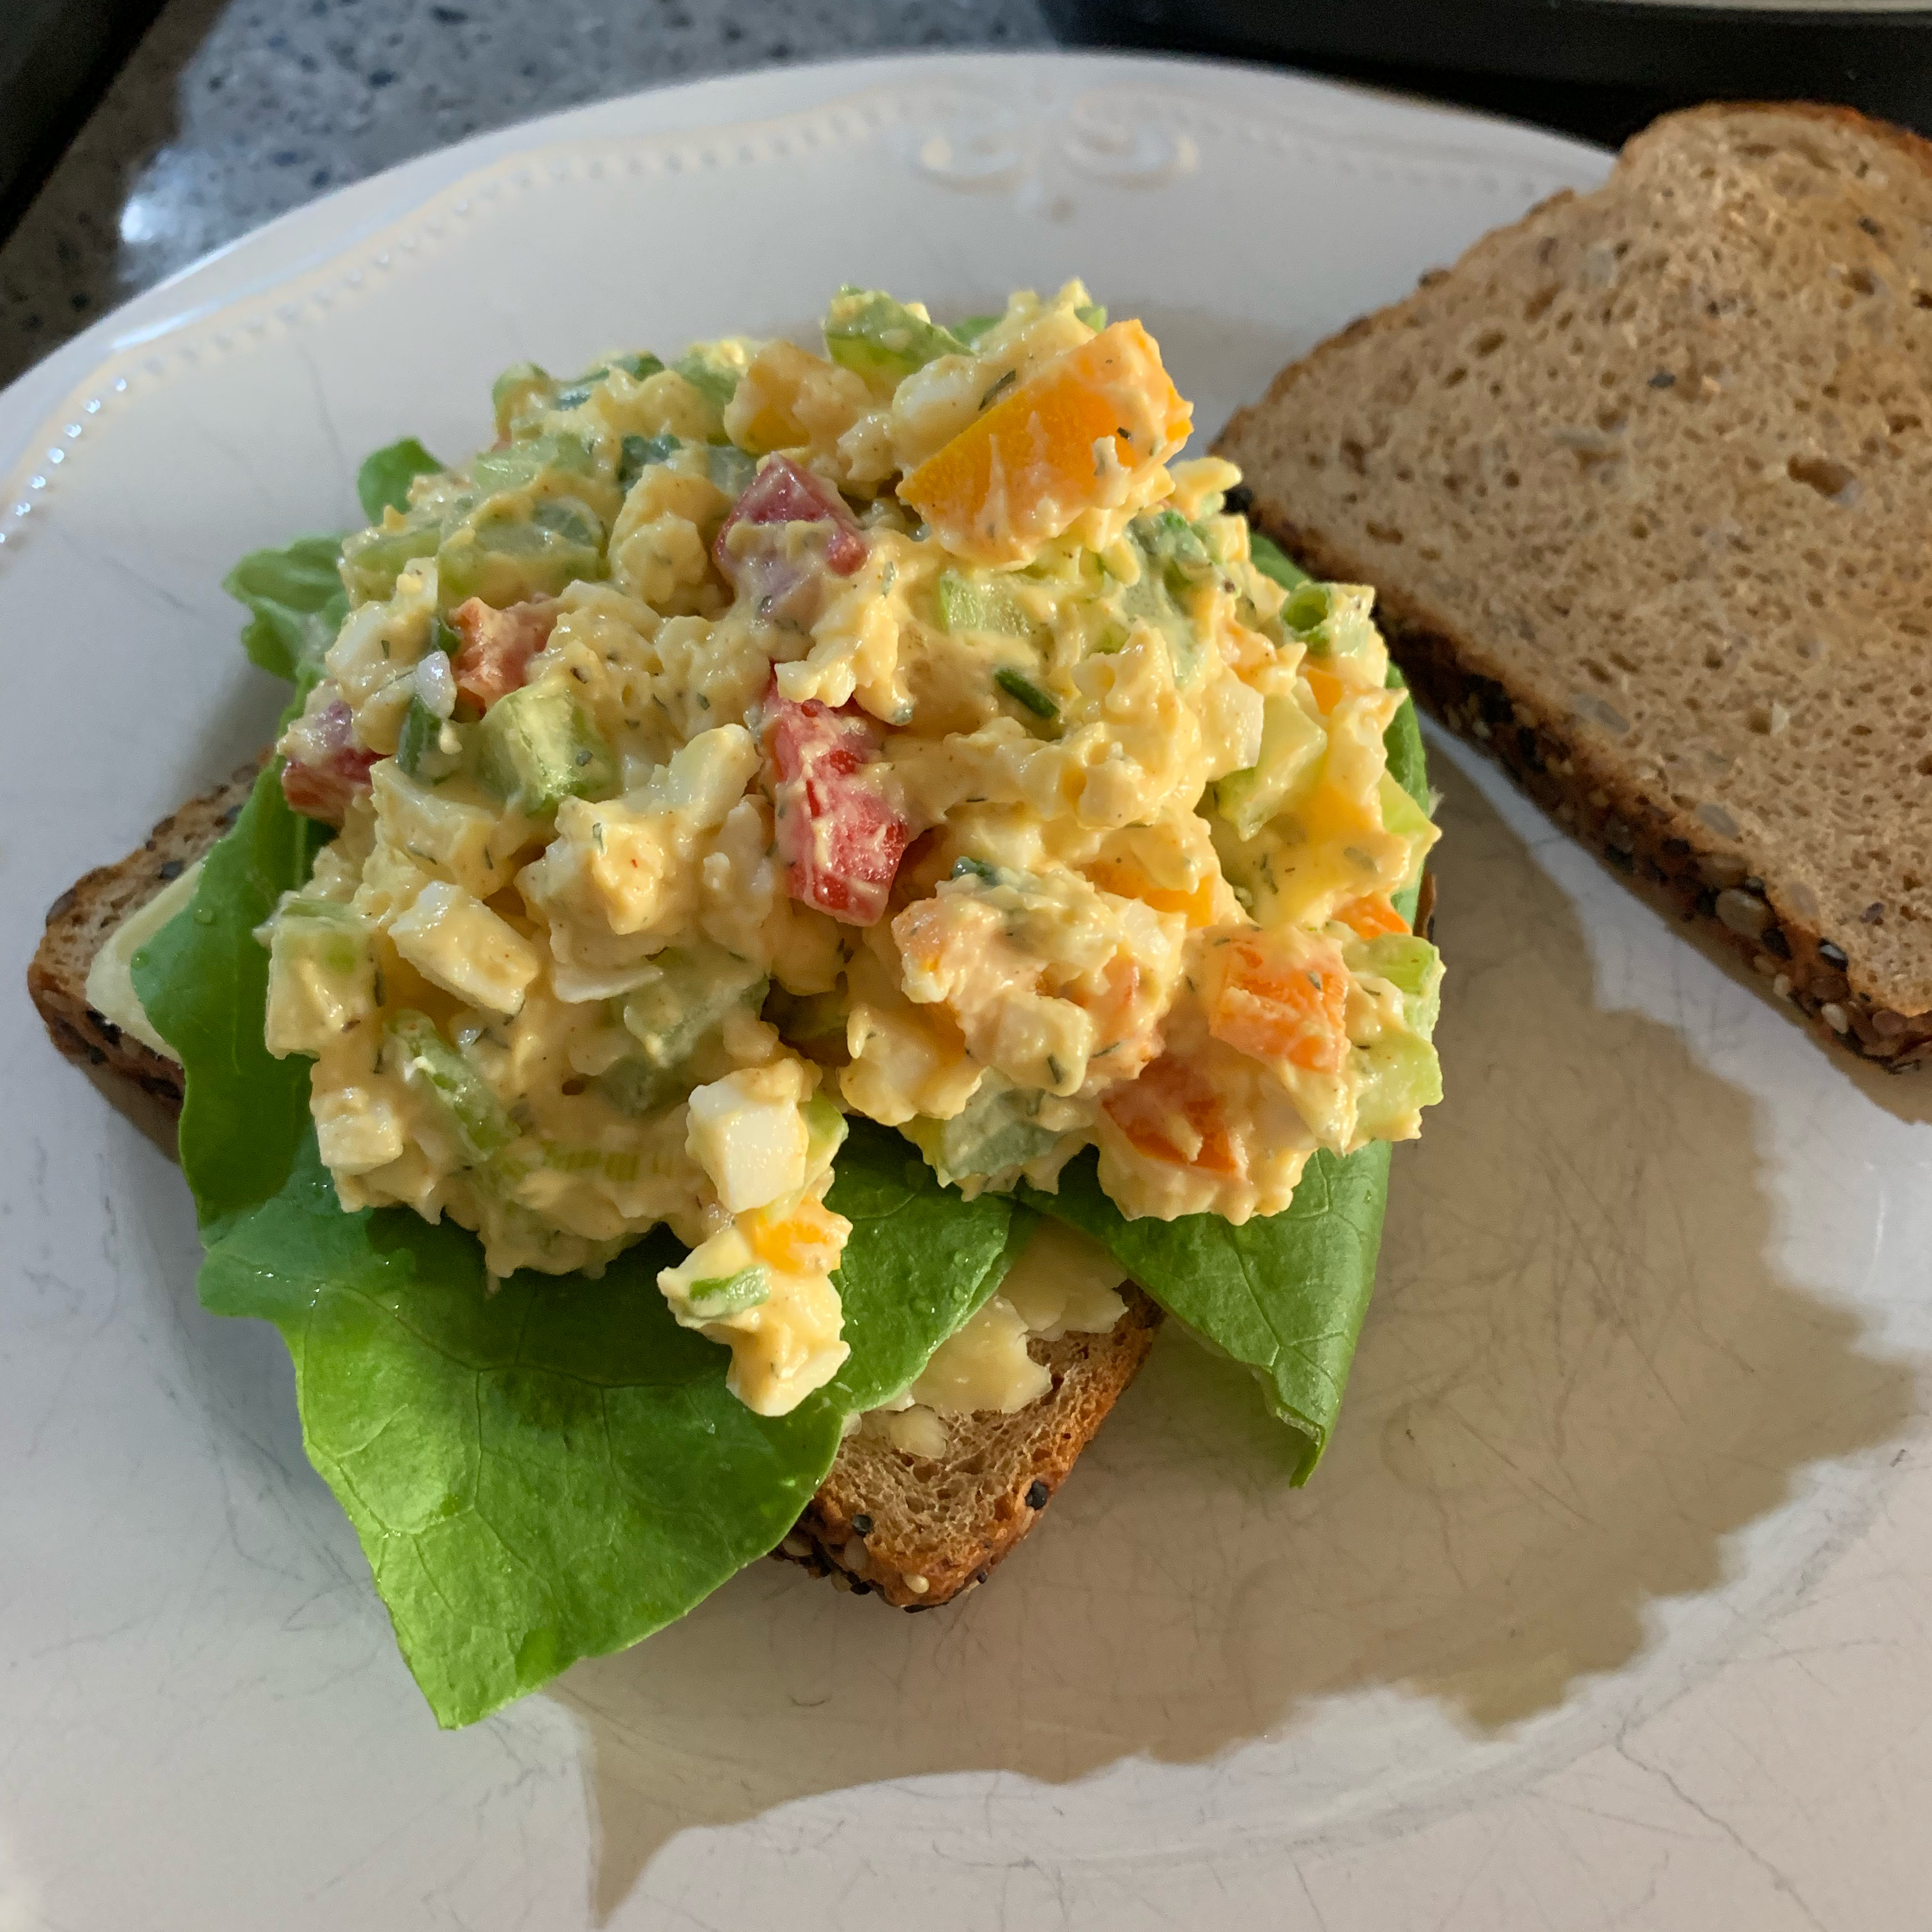 Delicious Egg Salad for Sandwiches Nathalie